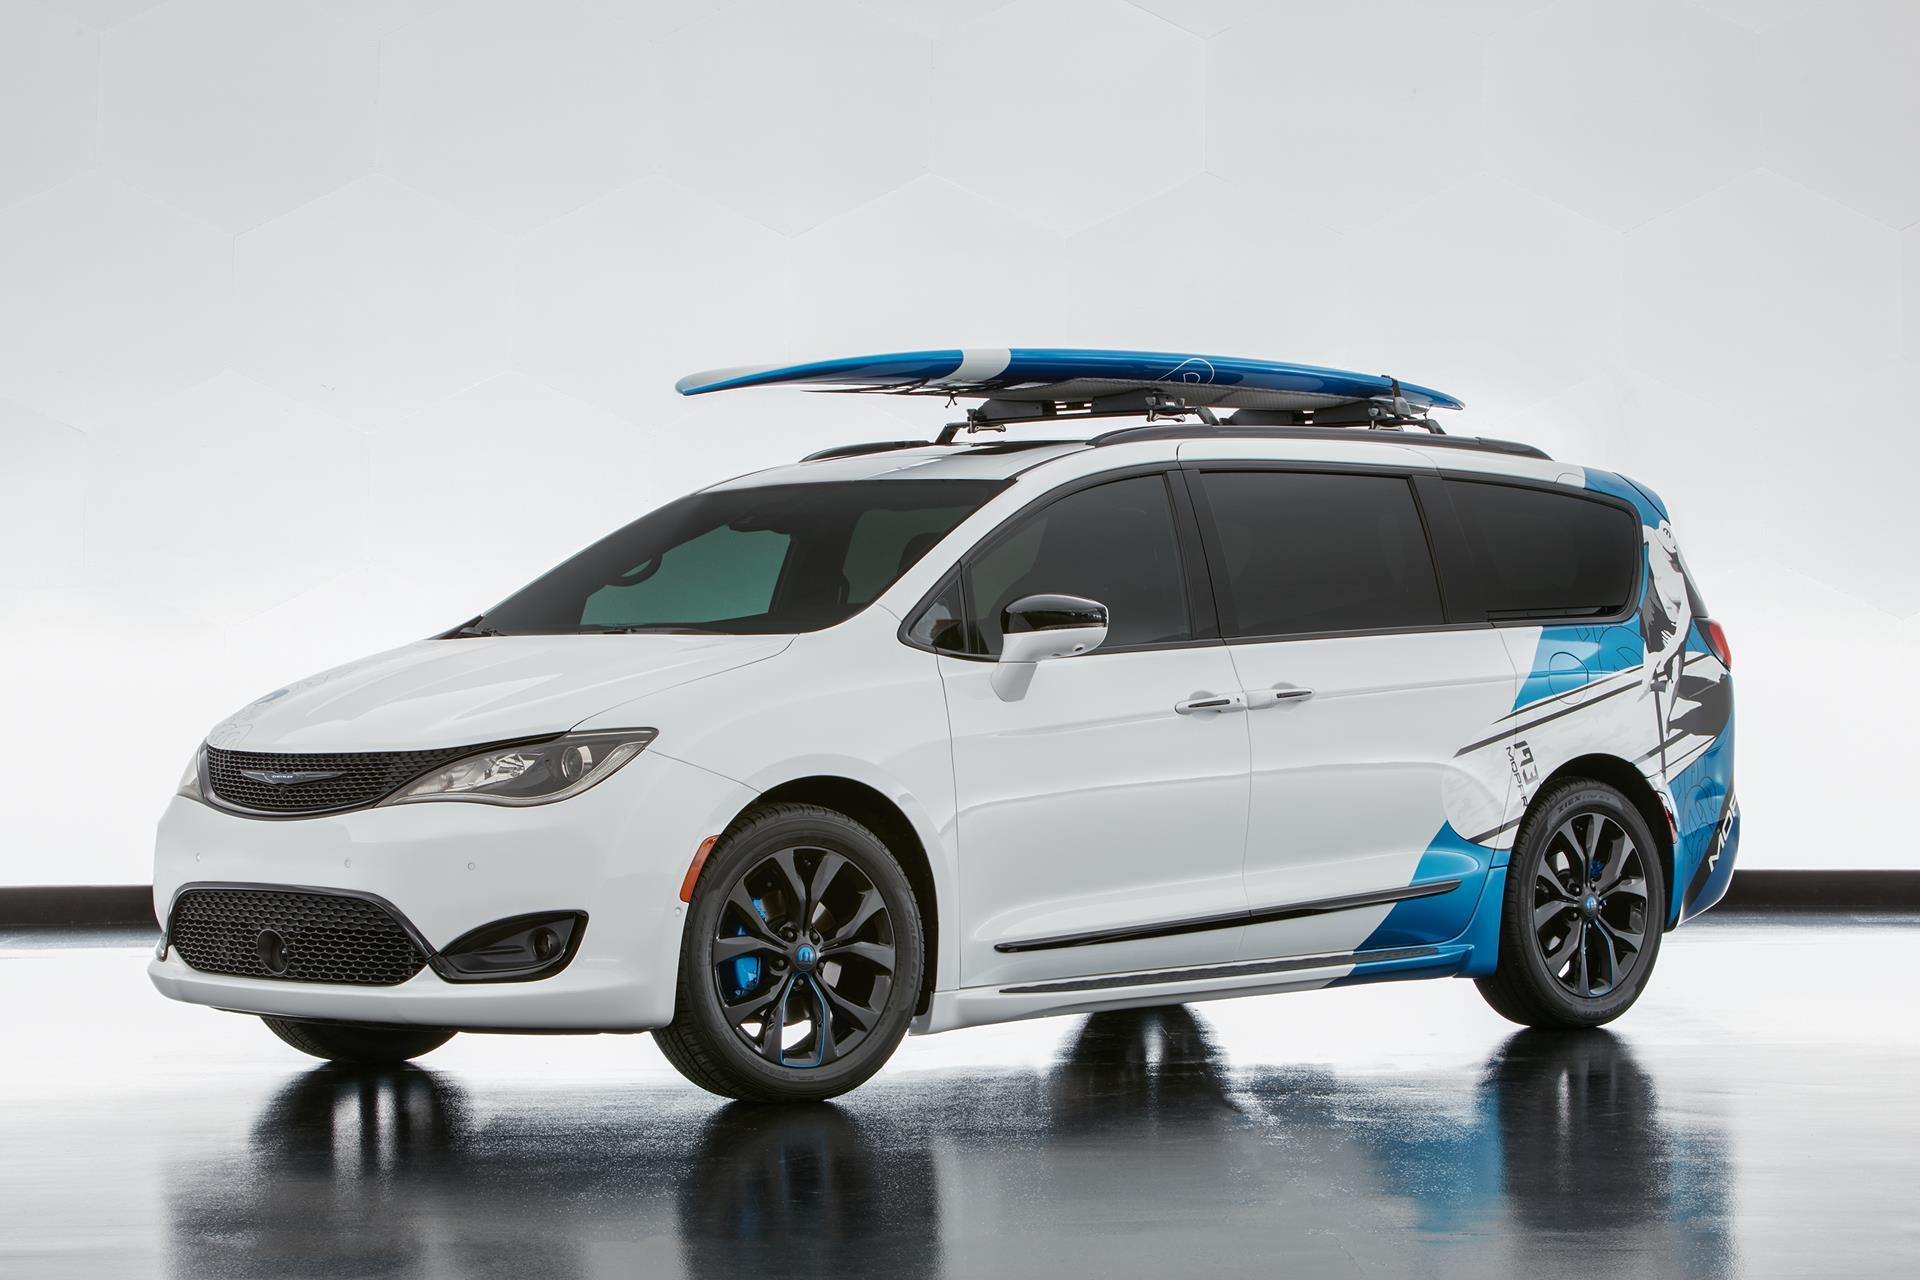 2016 Chrysler Pacifica Cadence News and Information ...